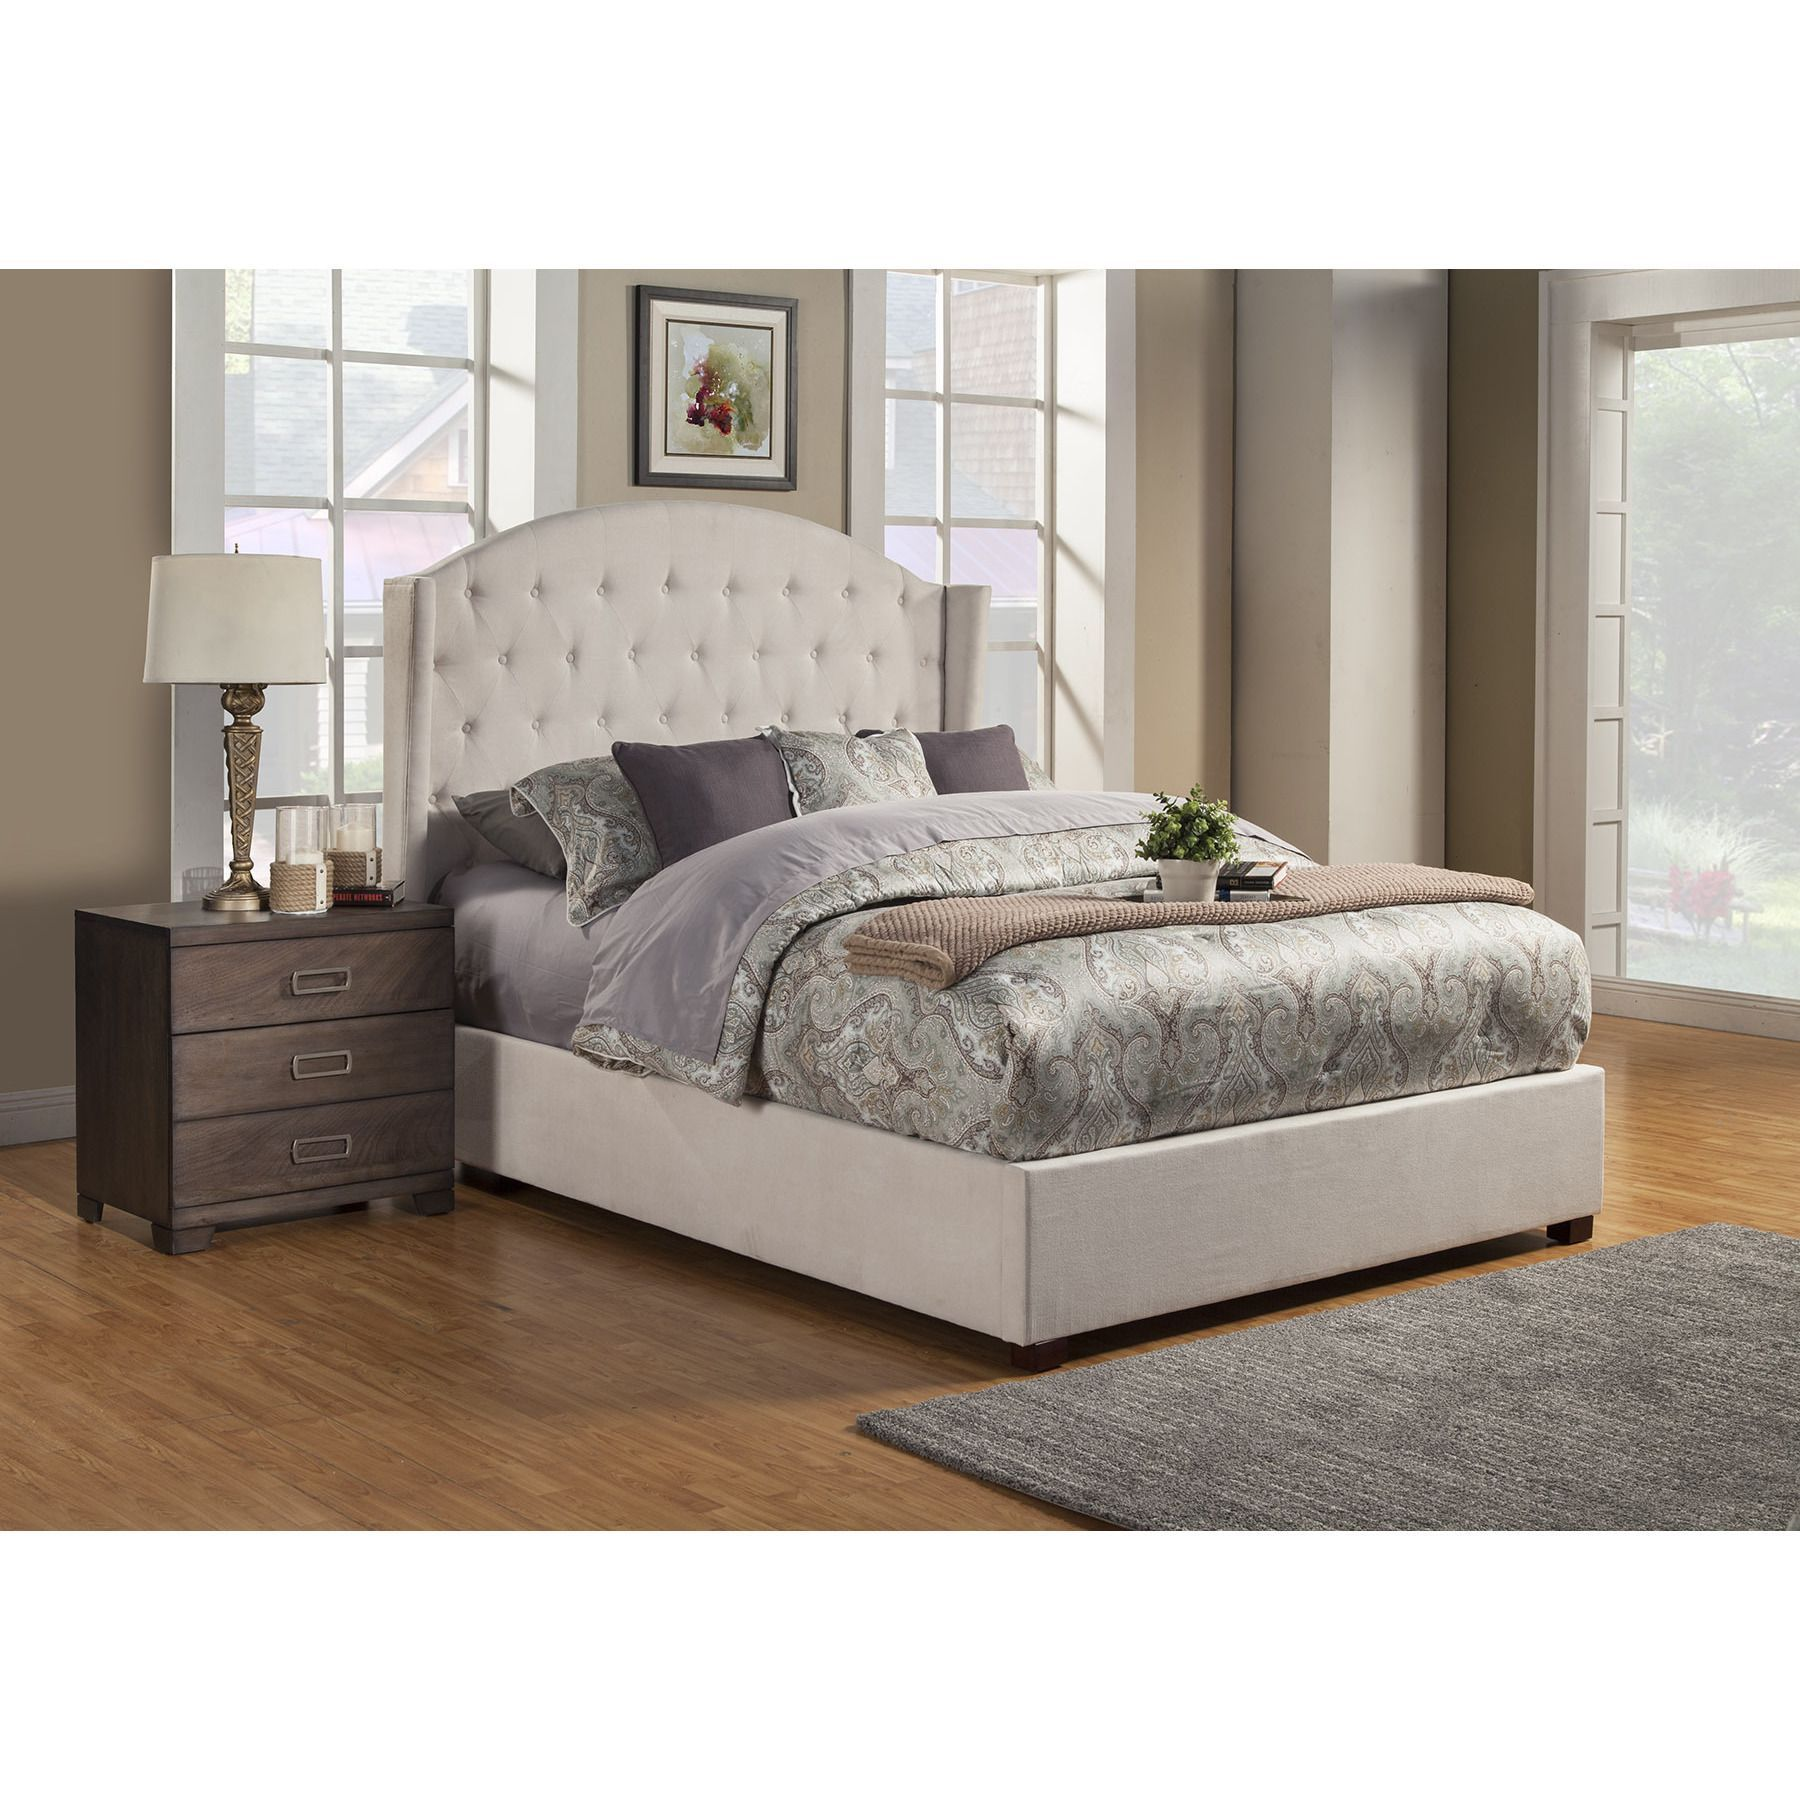 Alpines Ava Cream Wood Buscheliges Gepolstertes Bett Https